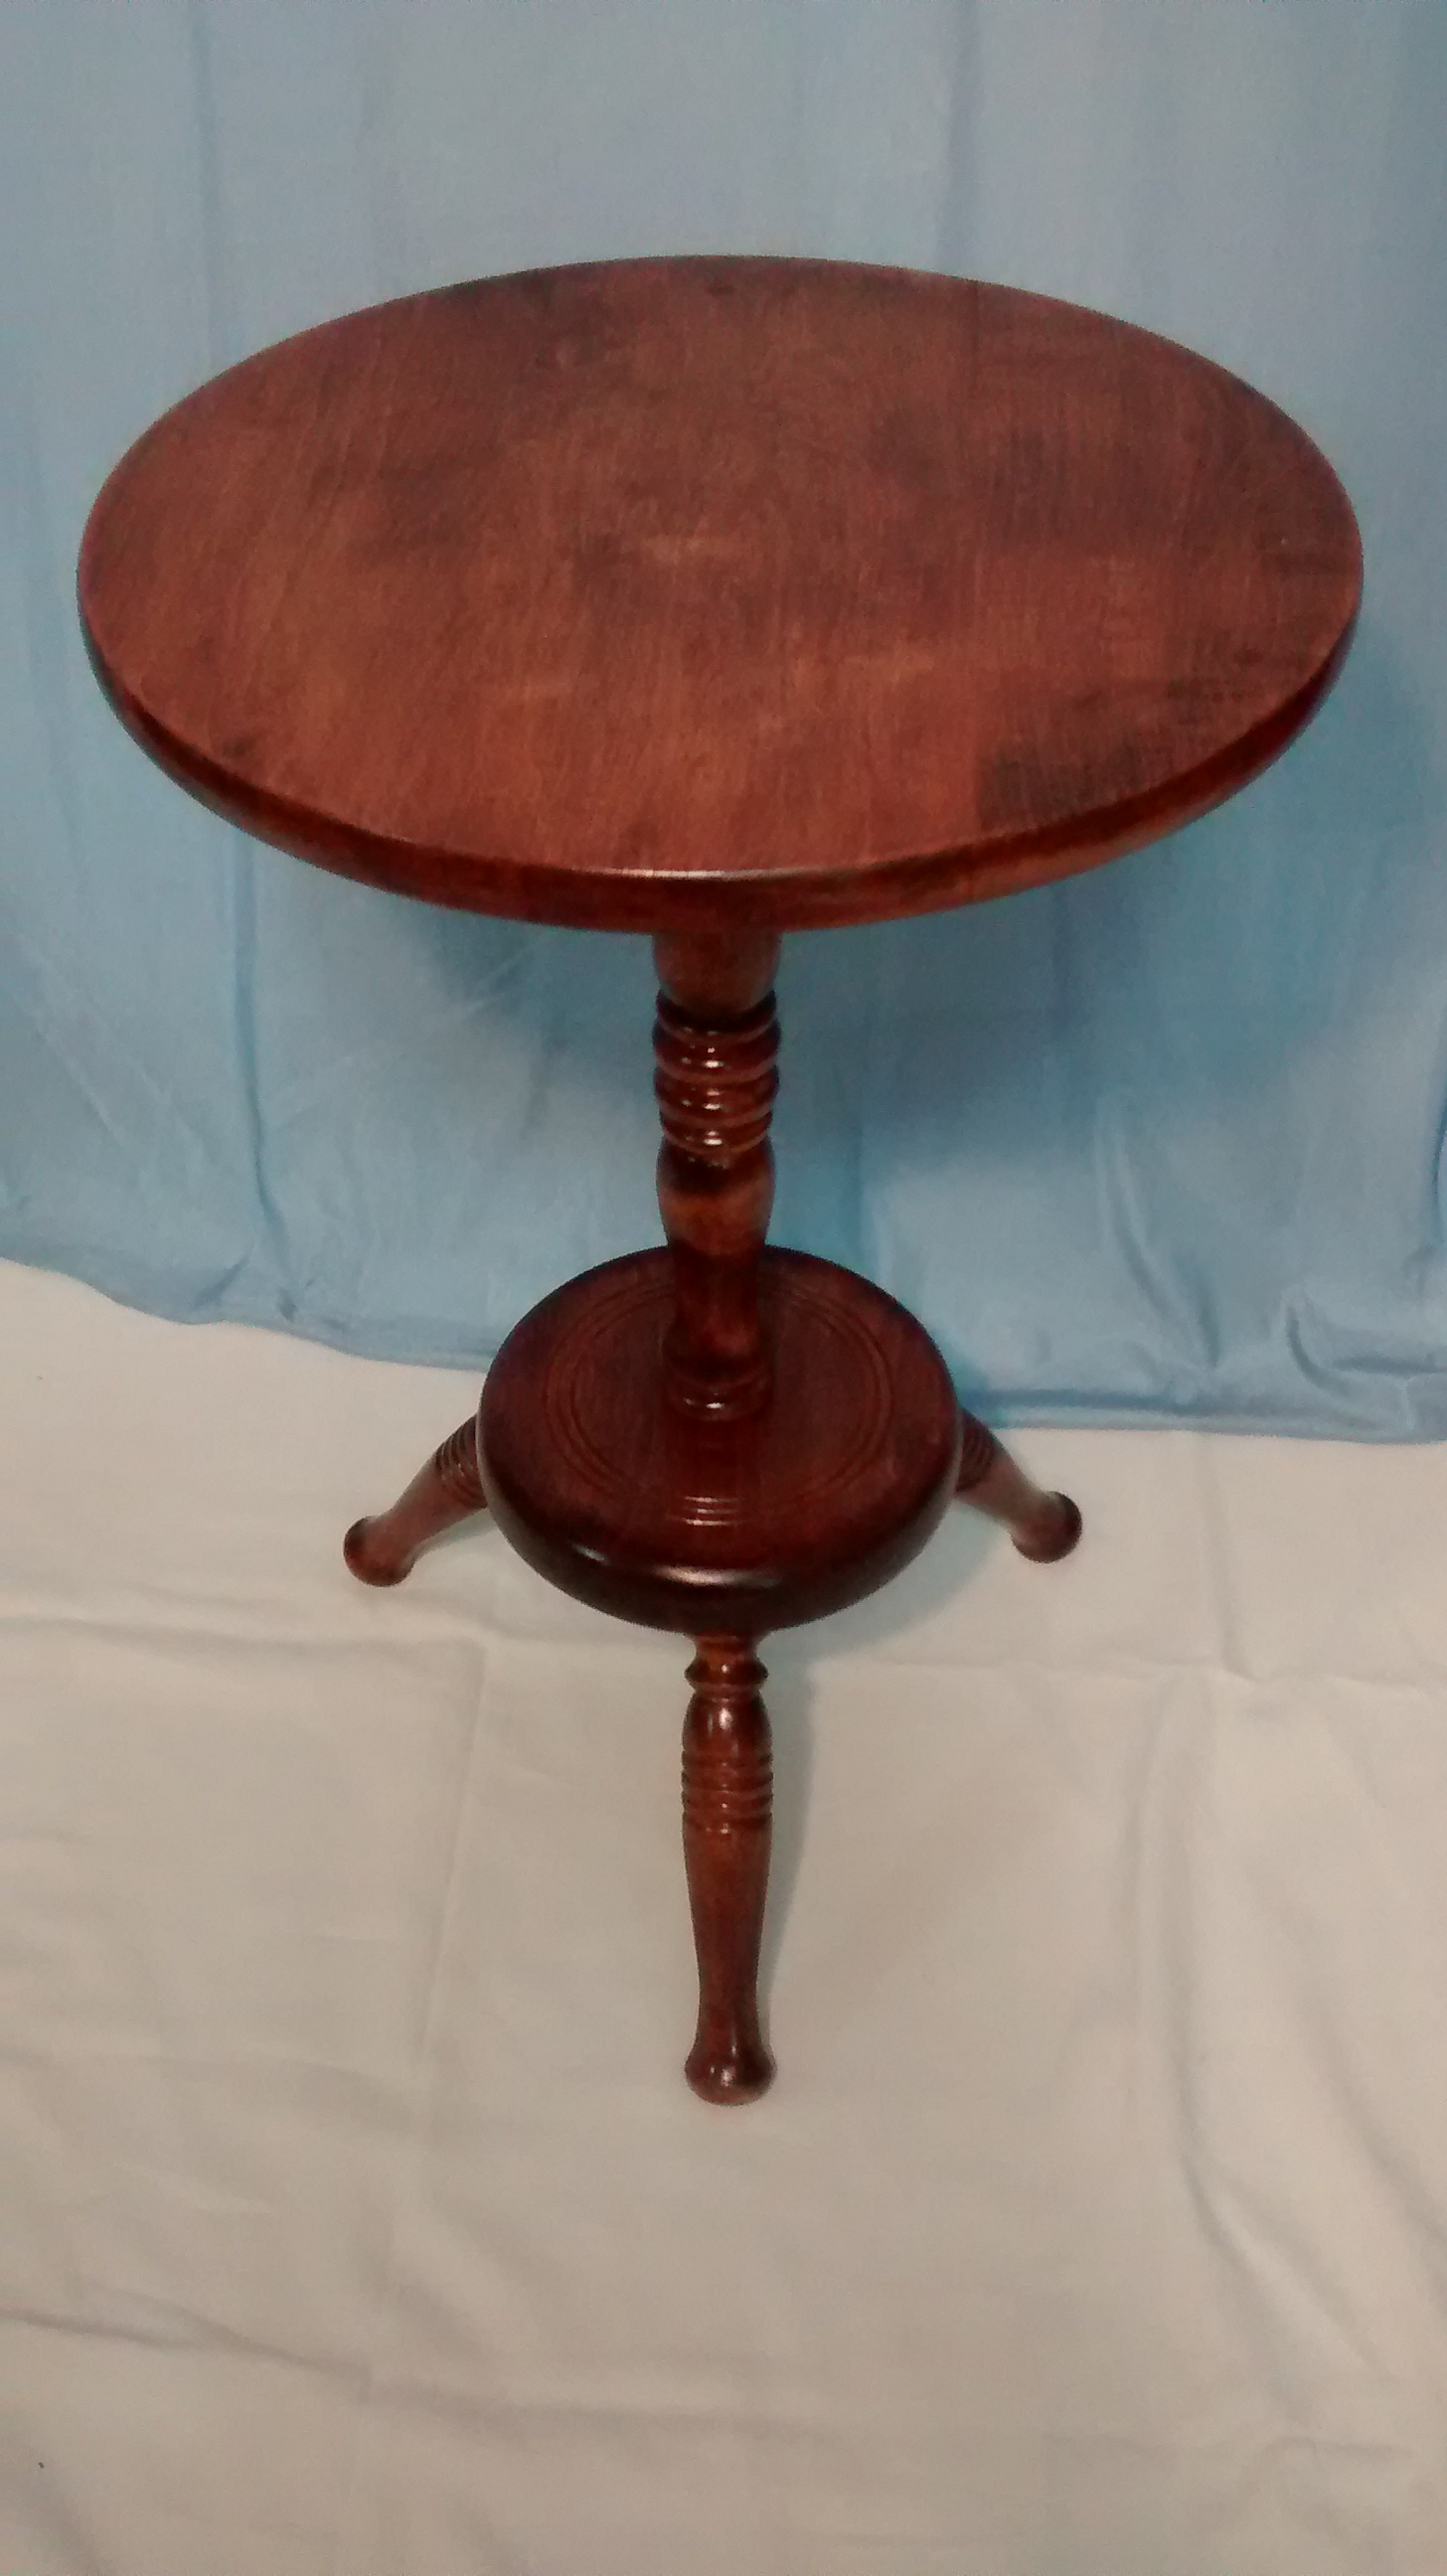 Refinished Classic Wooden Occasional Table